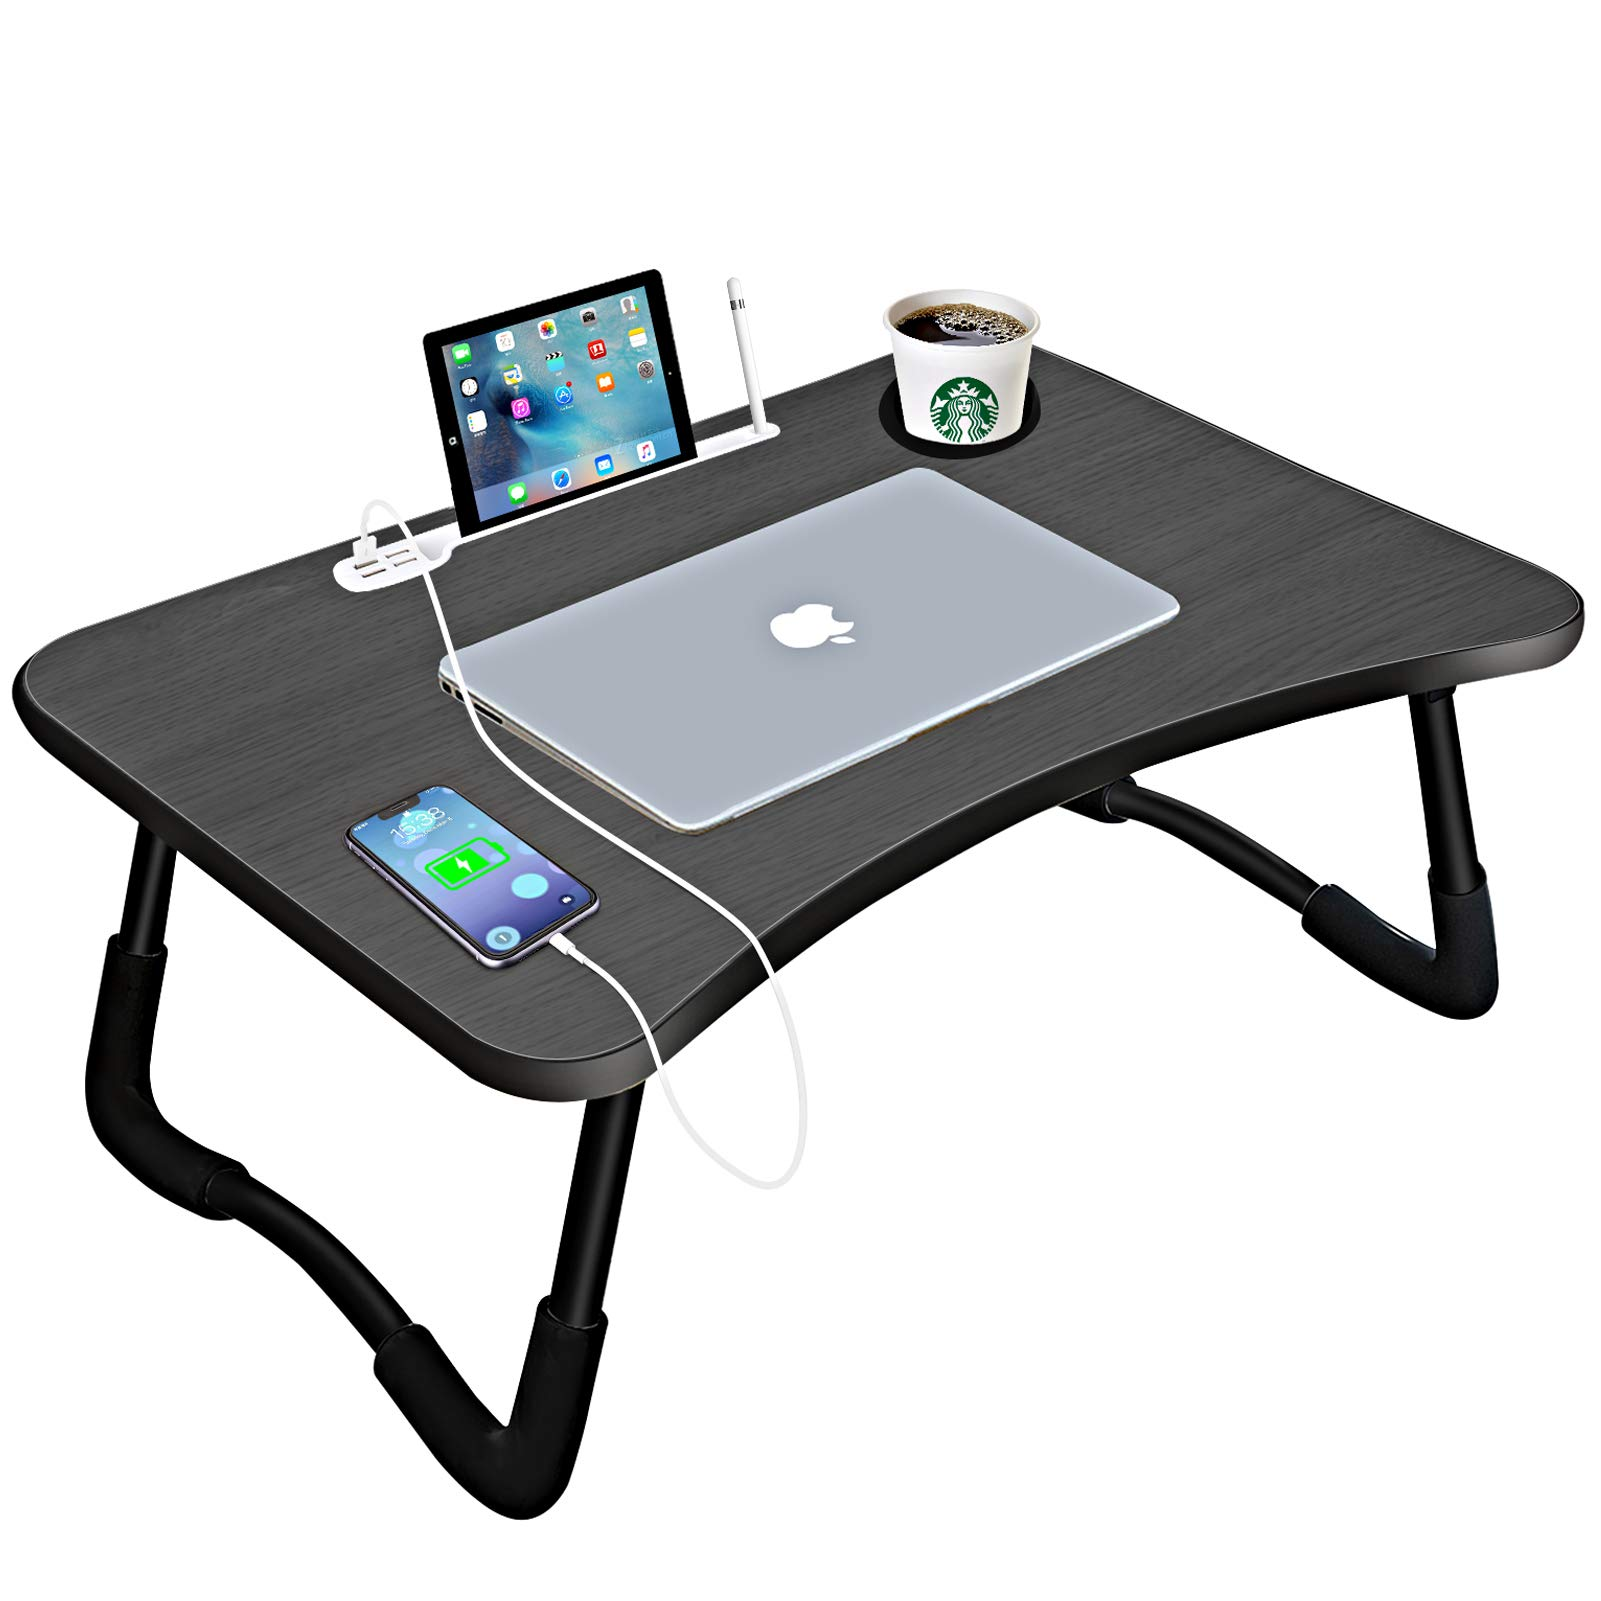 Laptop Bed DeskPortable Foldable Laptop Tray Table with USB Charge Port/Cup Holder/Storage